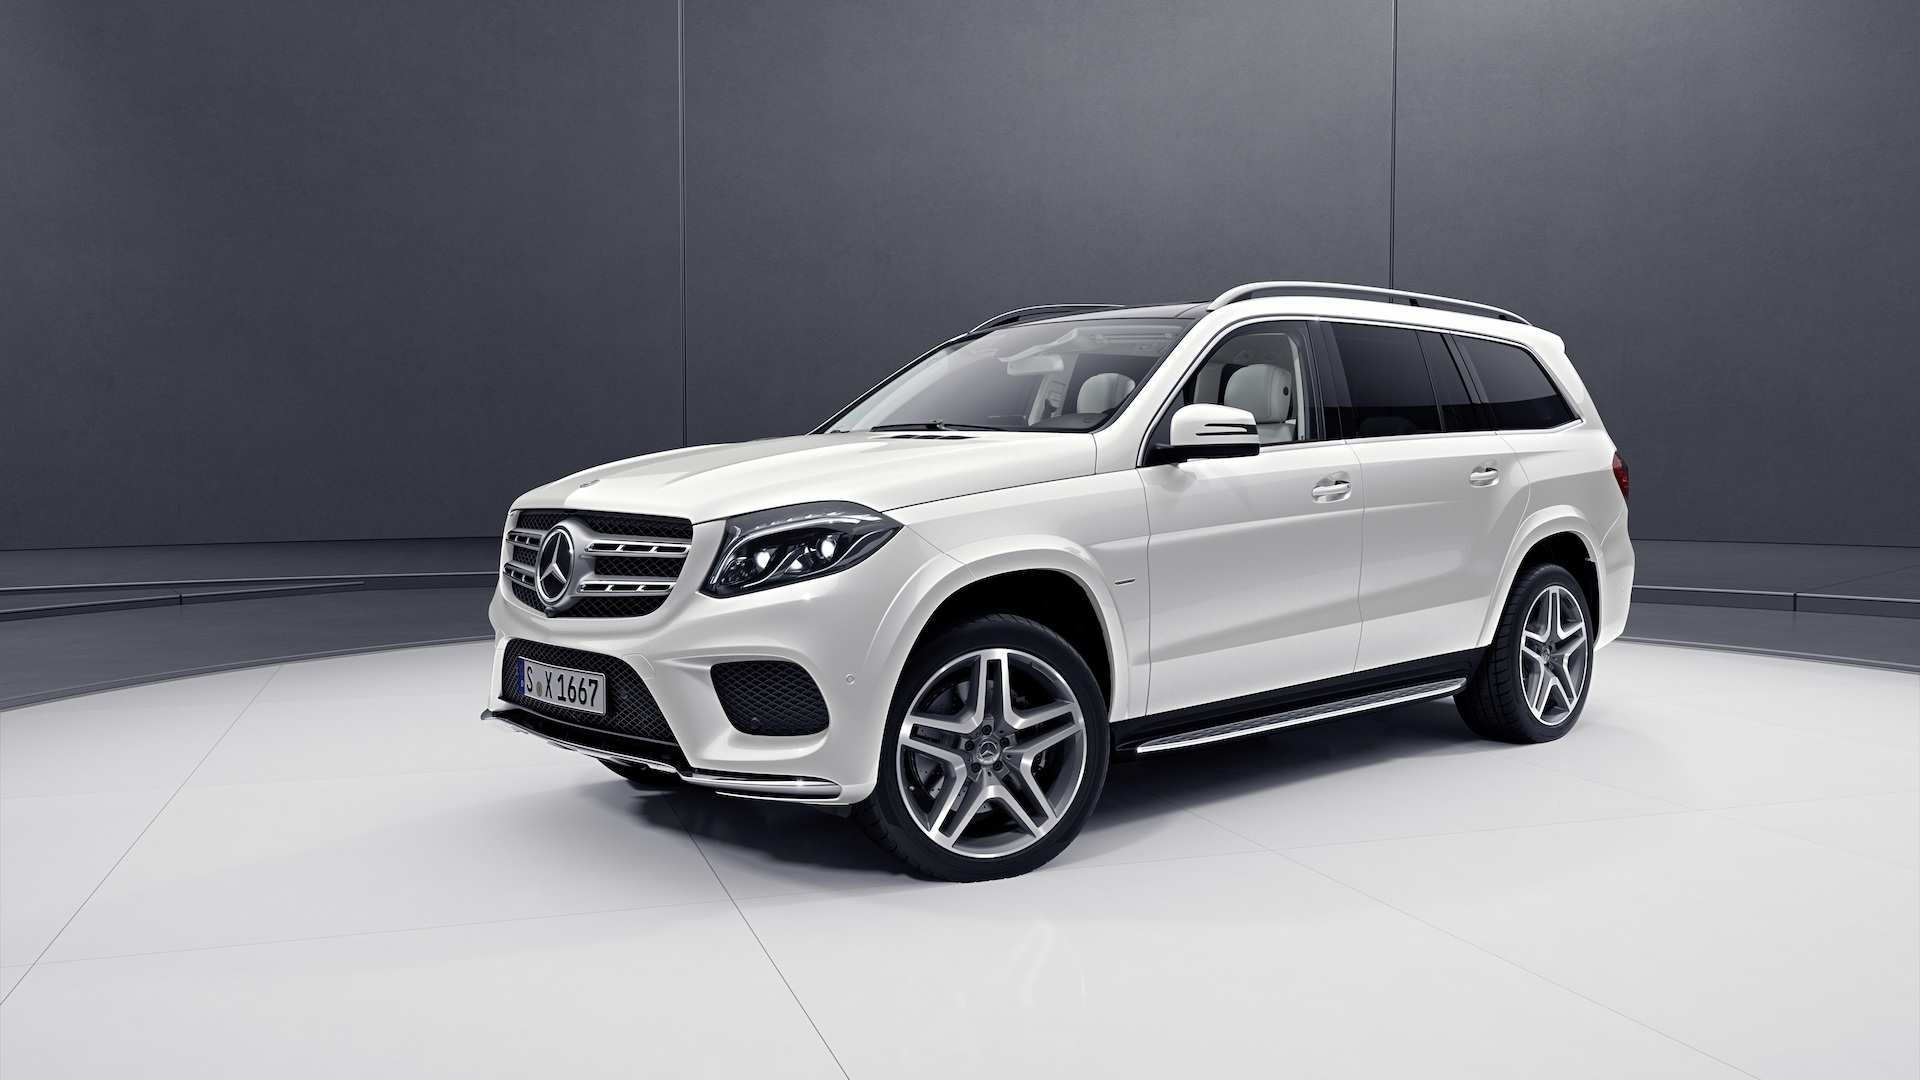 38 The Best 2019 Mercedes Diesel Suv Price Design And Review